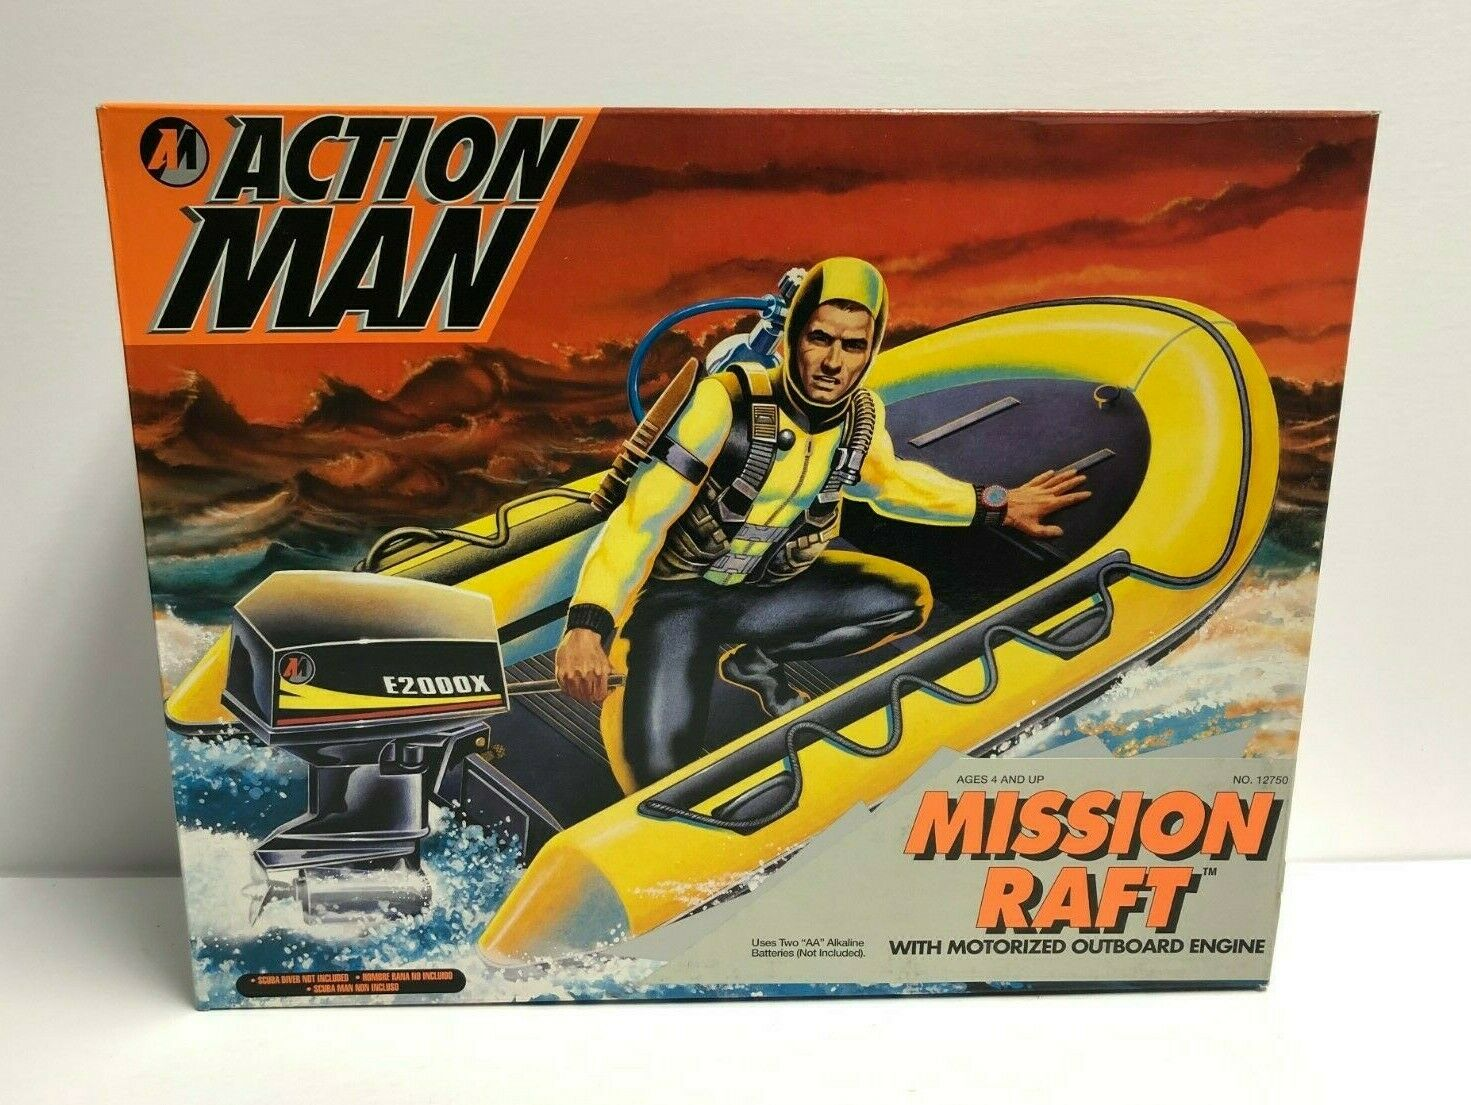 MISSION  RAFT 1993 Kenner azione uomo with motorized outtavola engine NOS  consegna veloce